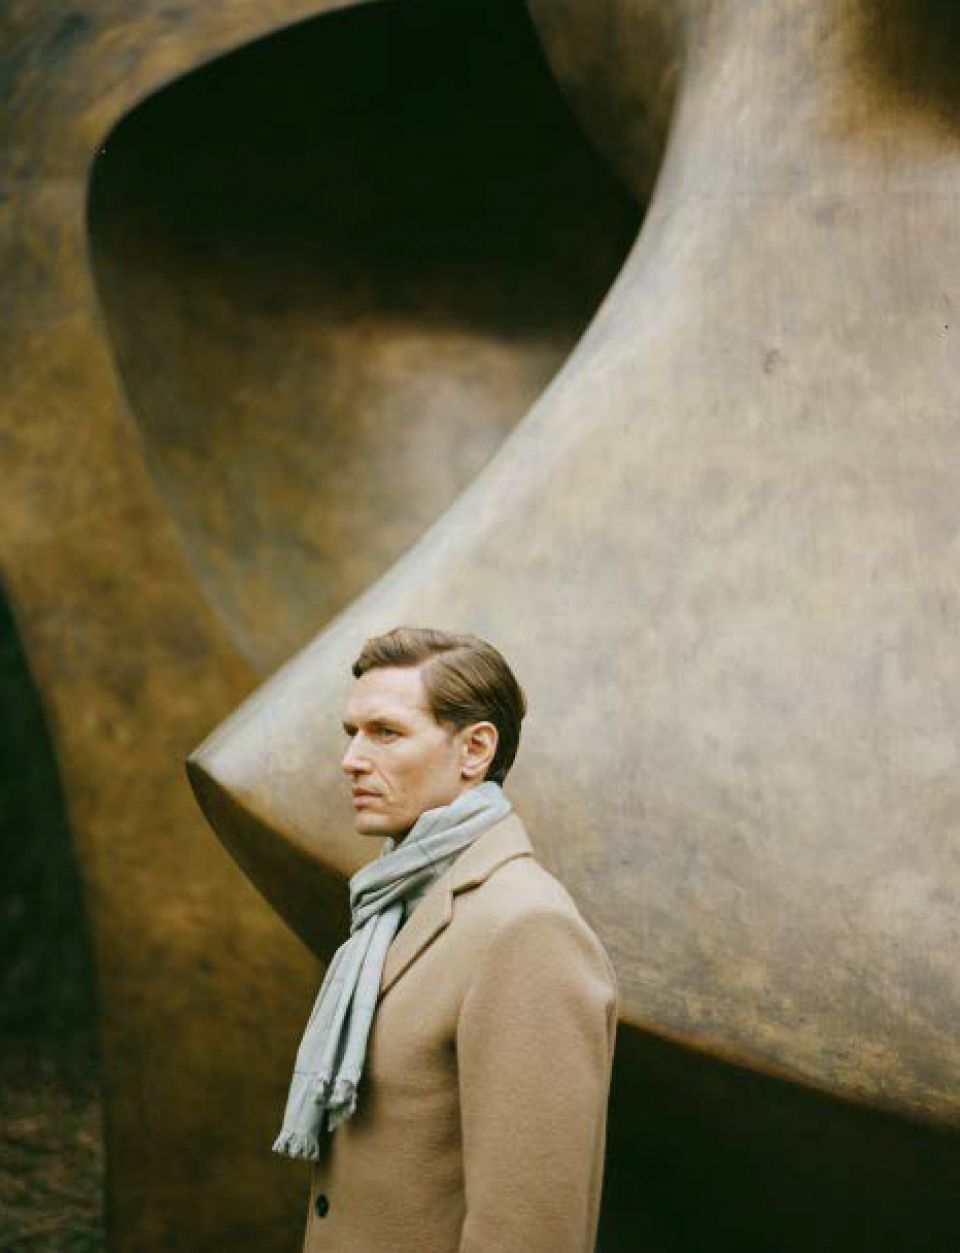 A male model, wearing camel coloured coat and pale blue scarf, in front of the sculpture 'Large Figure in a Shelter'